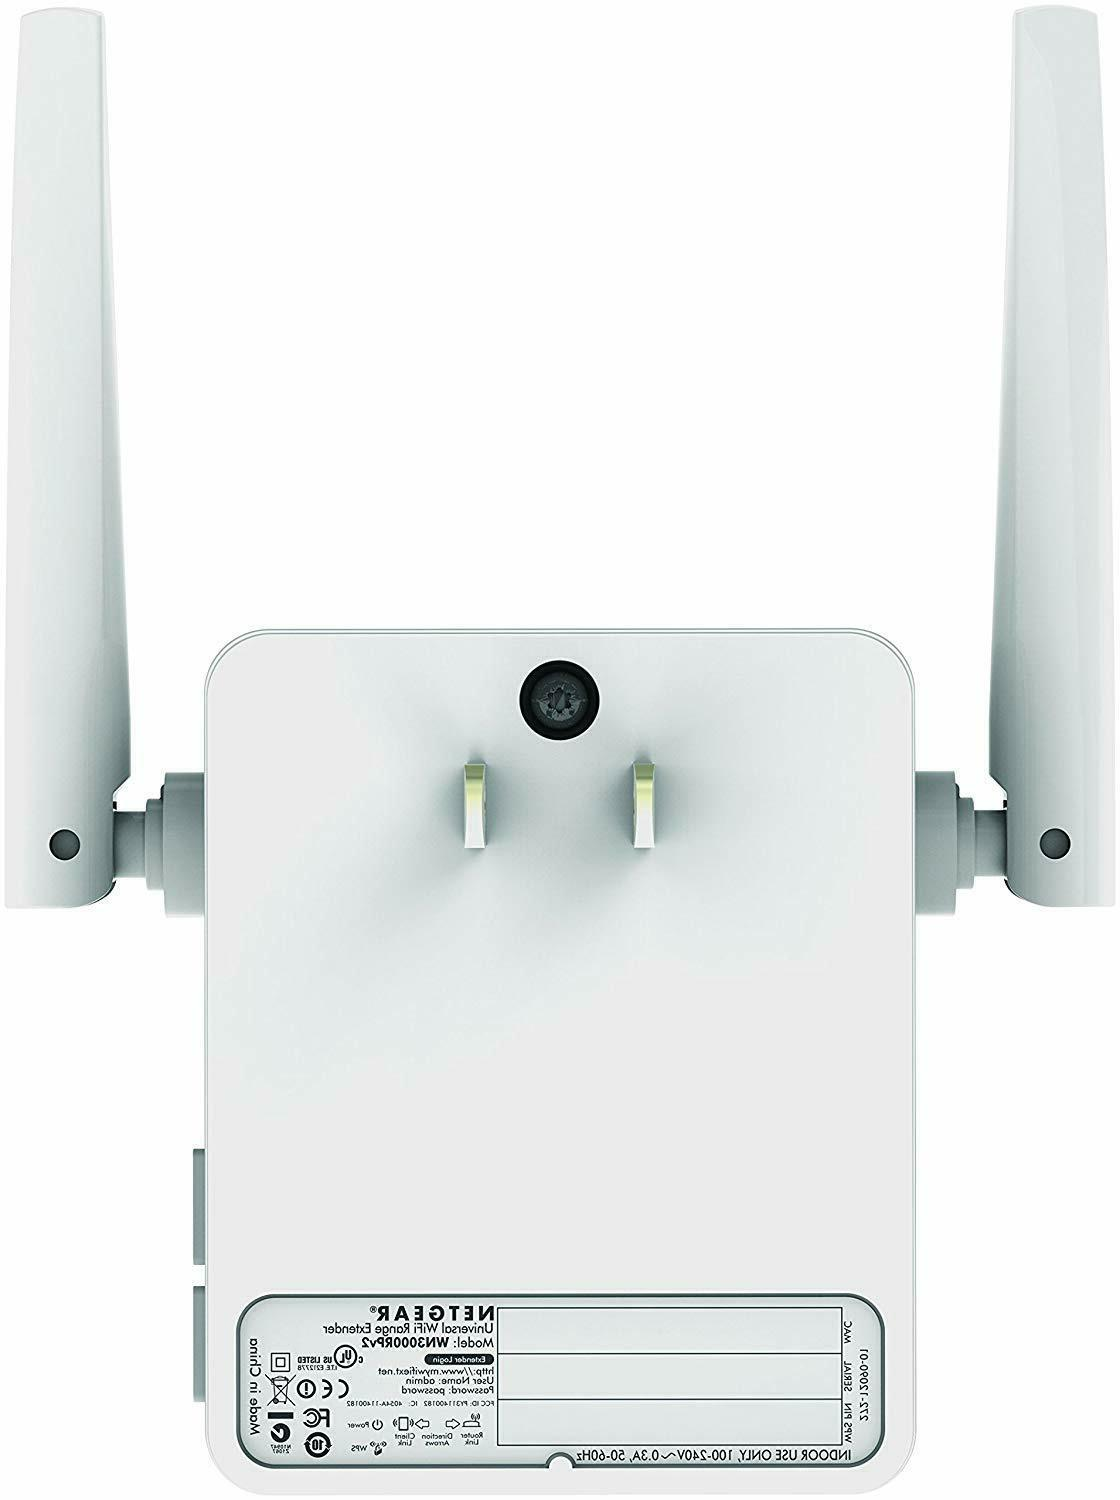 NEW!!! NETGEAR WiFi Extender coverage up Mbps